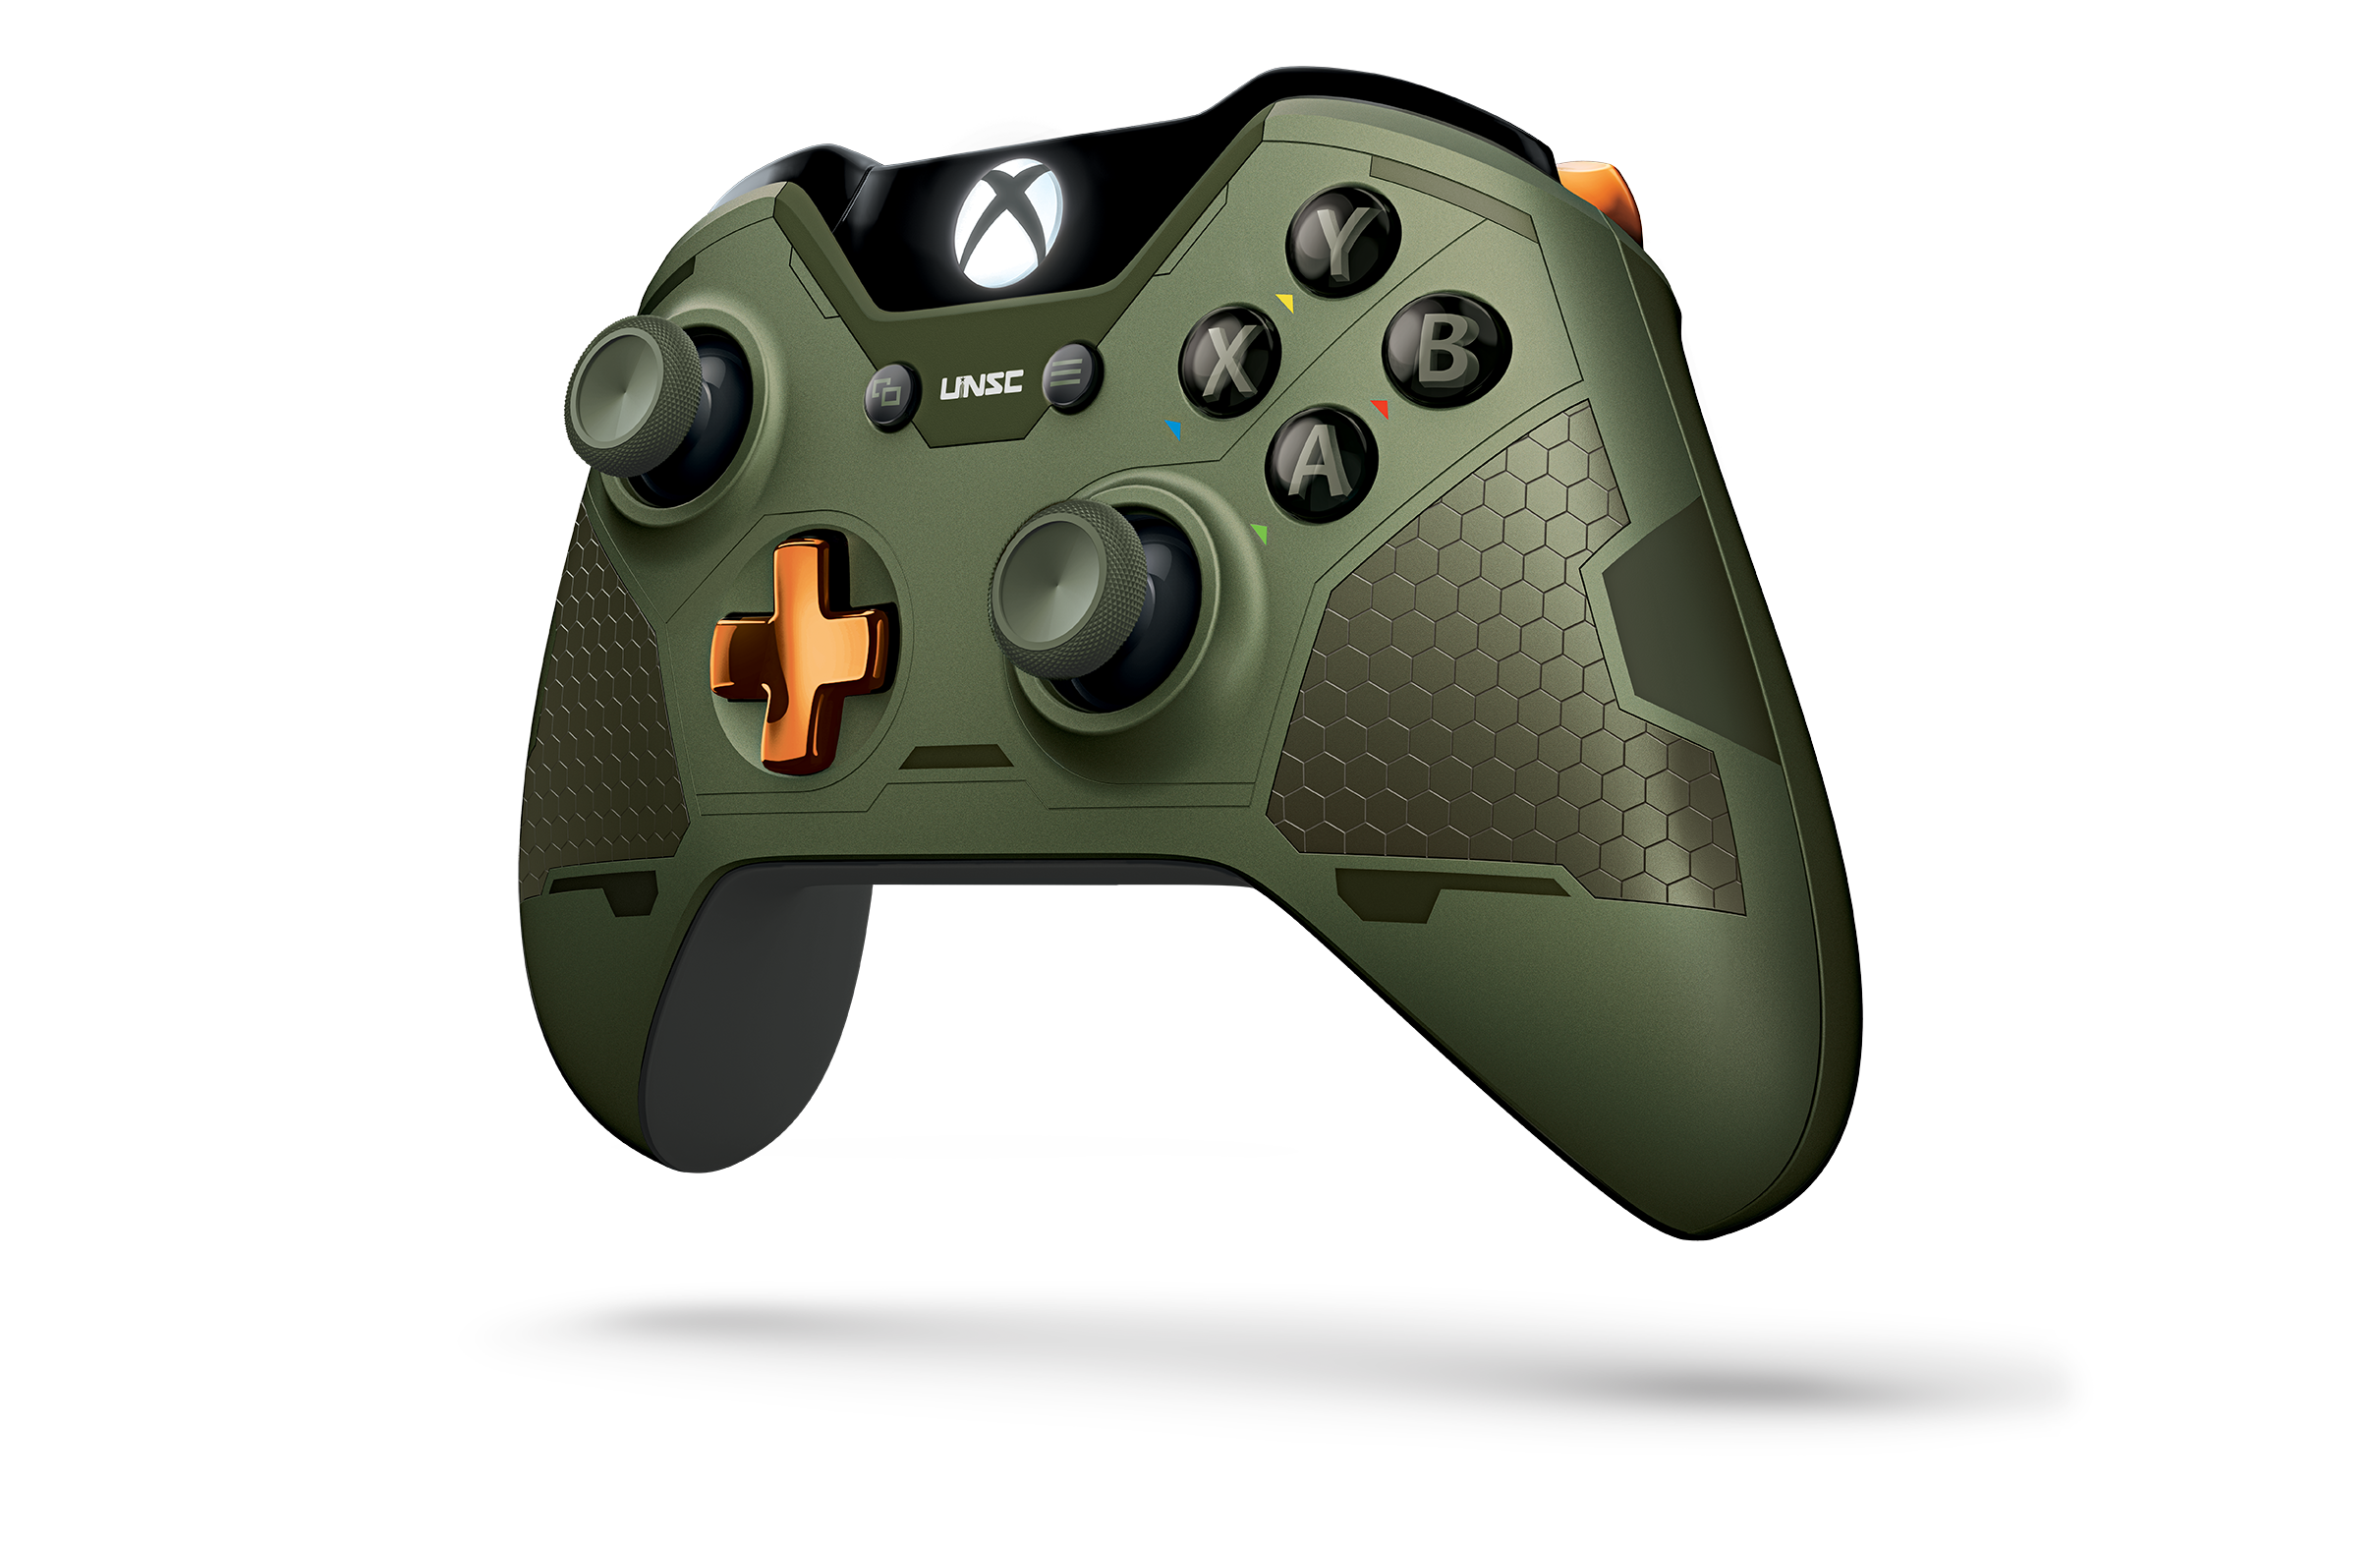 Xbox-One-Limited-Edition-Halo-5-Master-Chief-Controller-Left-Render-png